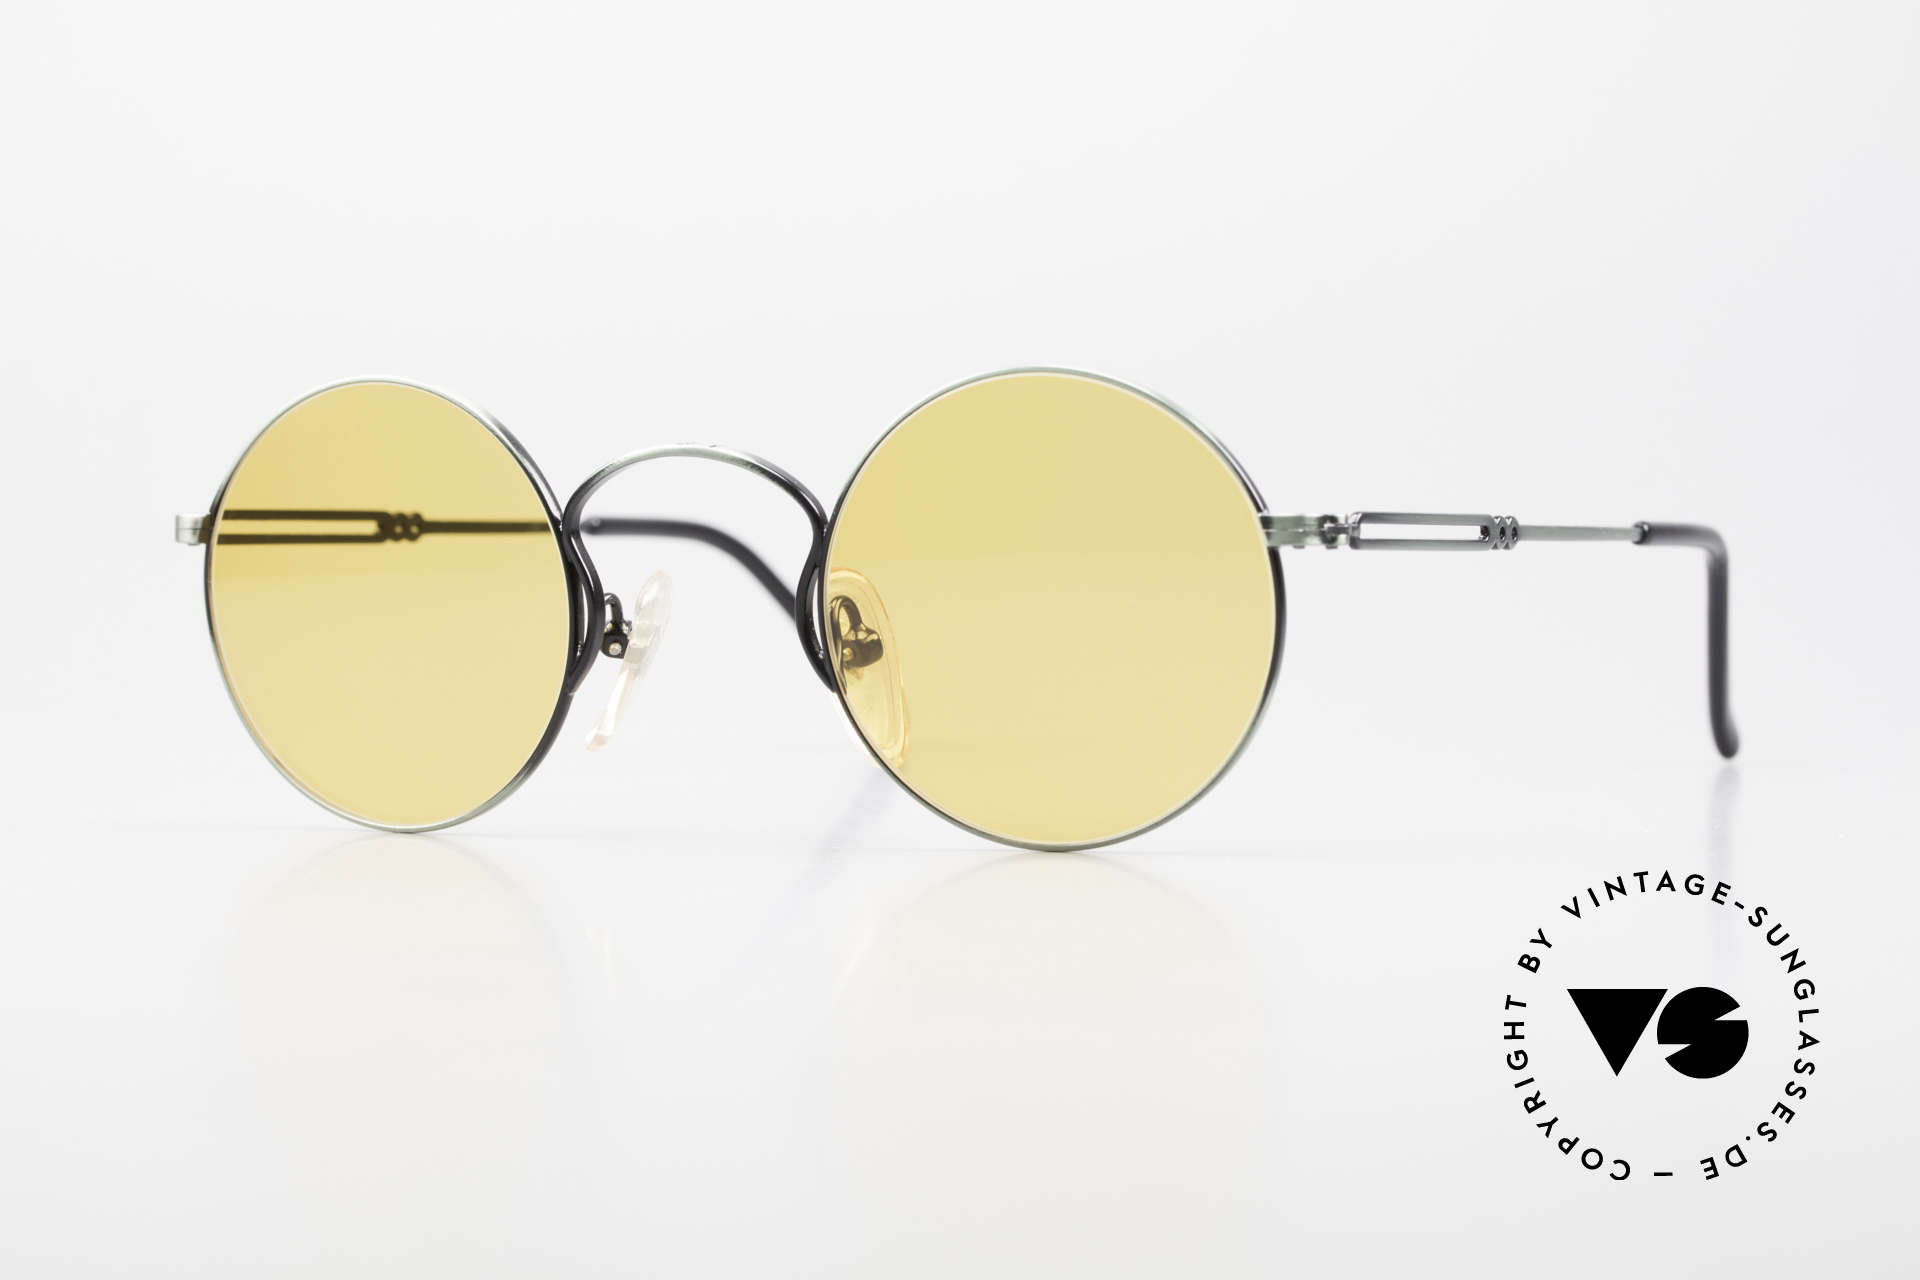 Jean Paul Gaultier 55-0172 Round 90's Vintage Glasses JPG, designer sunglasses by Jean Paul Gaultier from 1994, Made for Men and Women